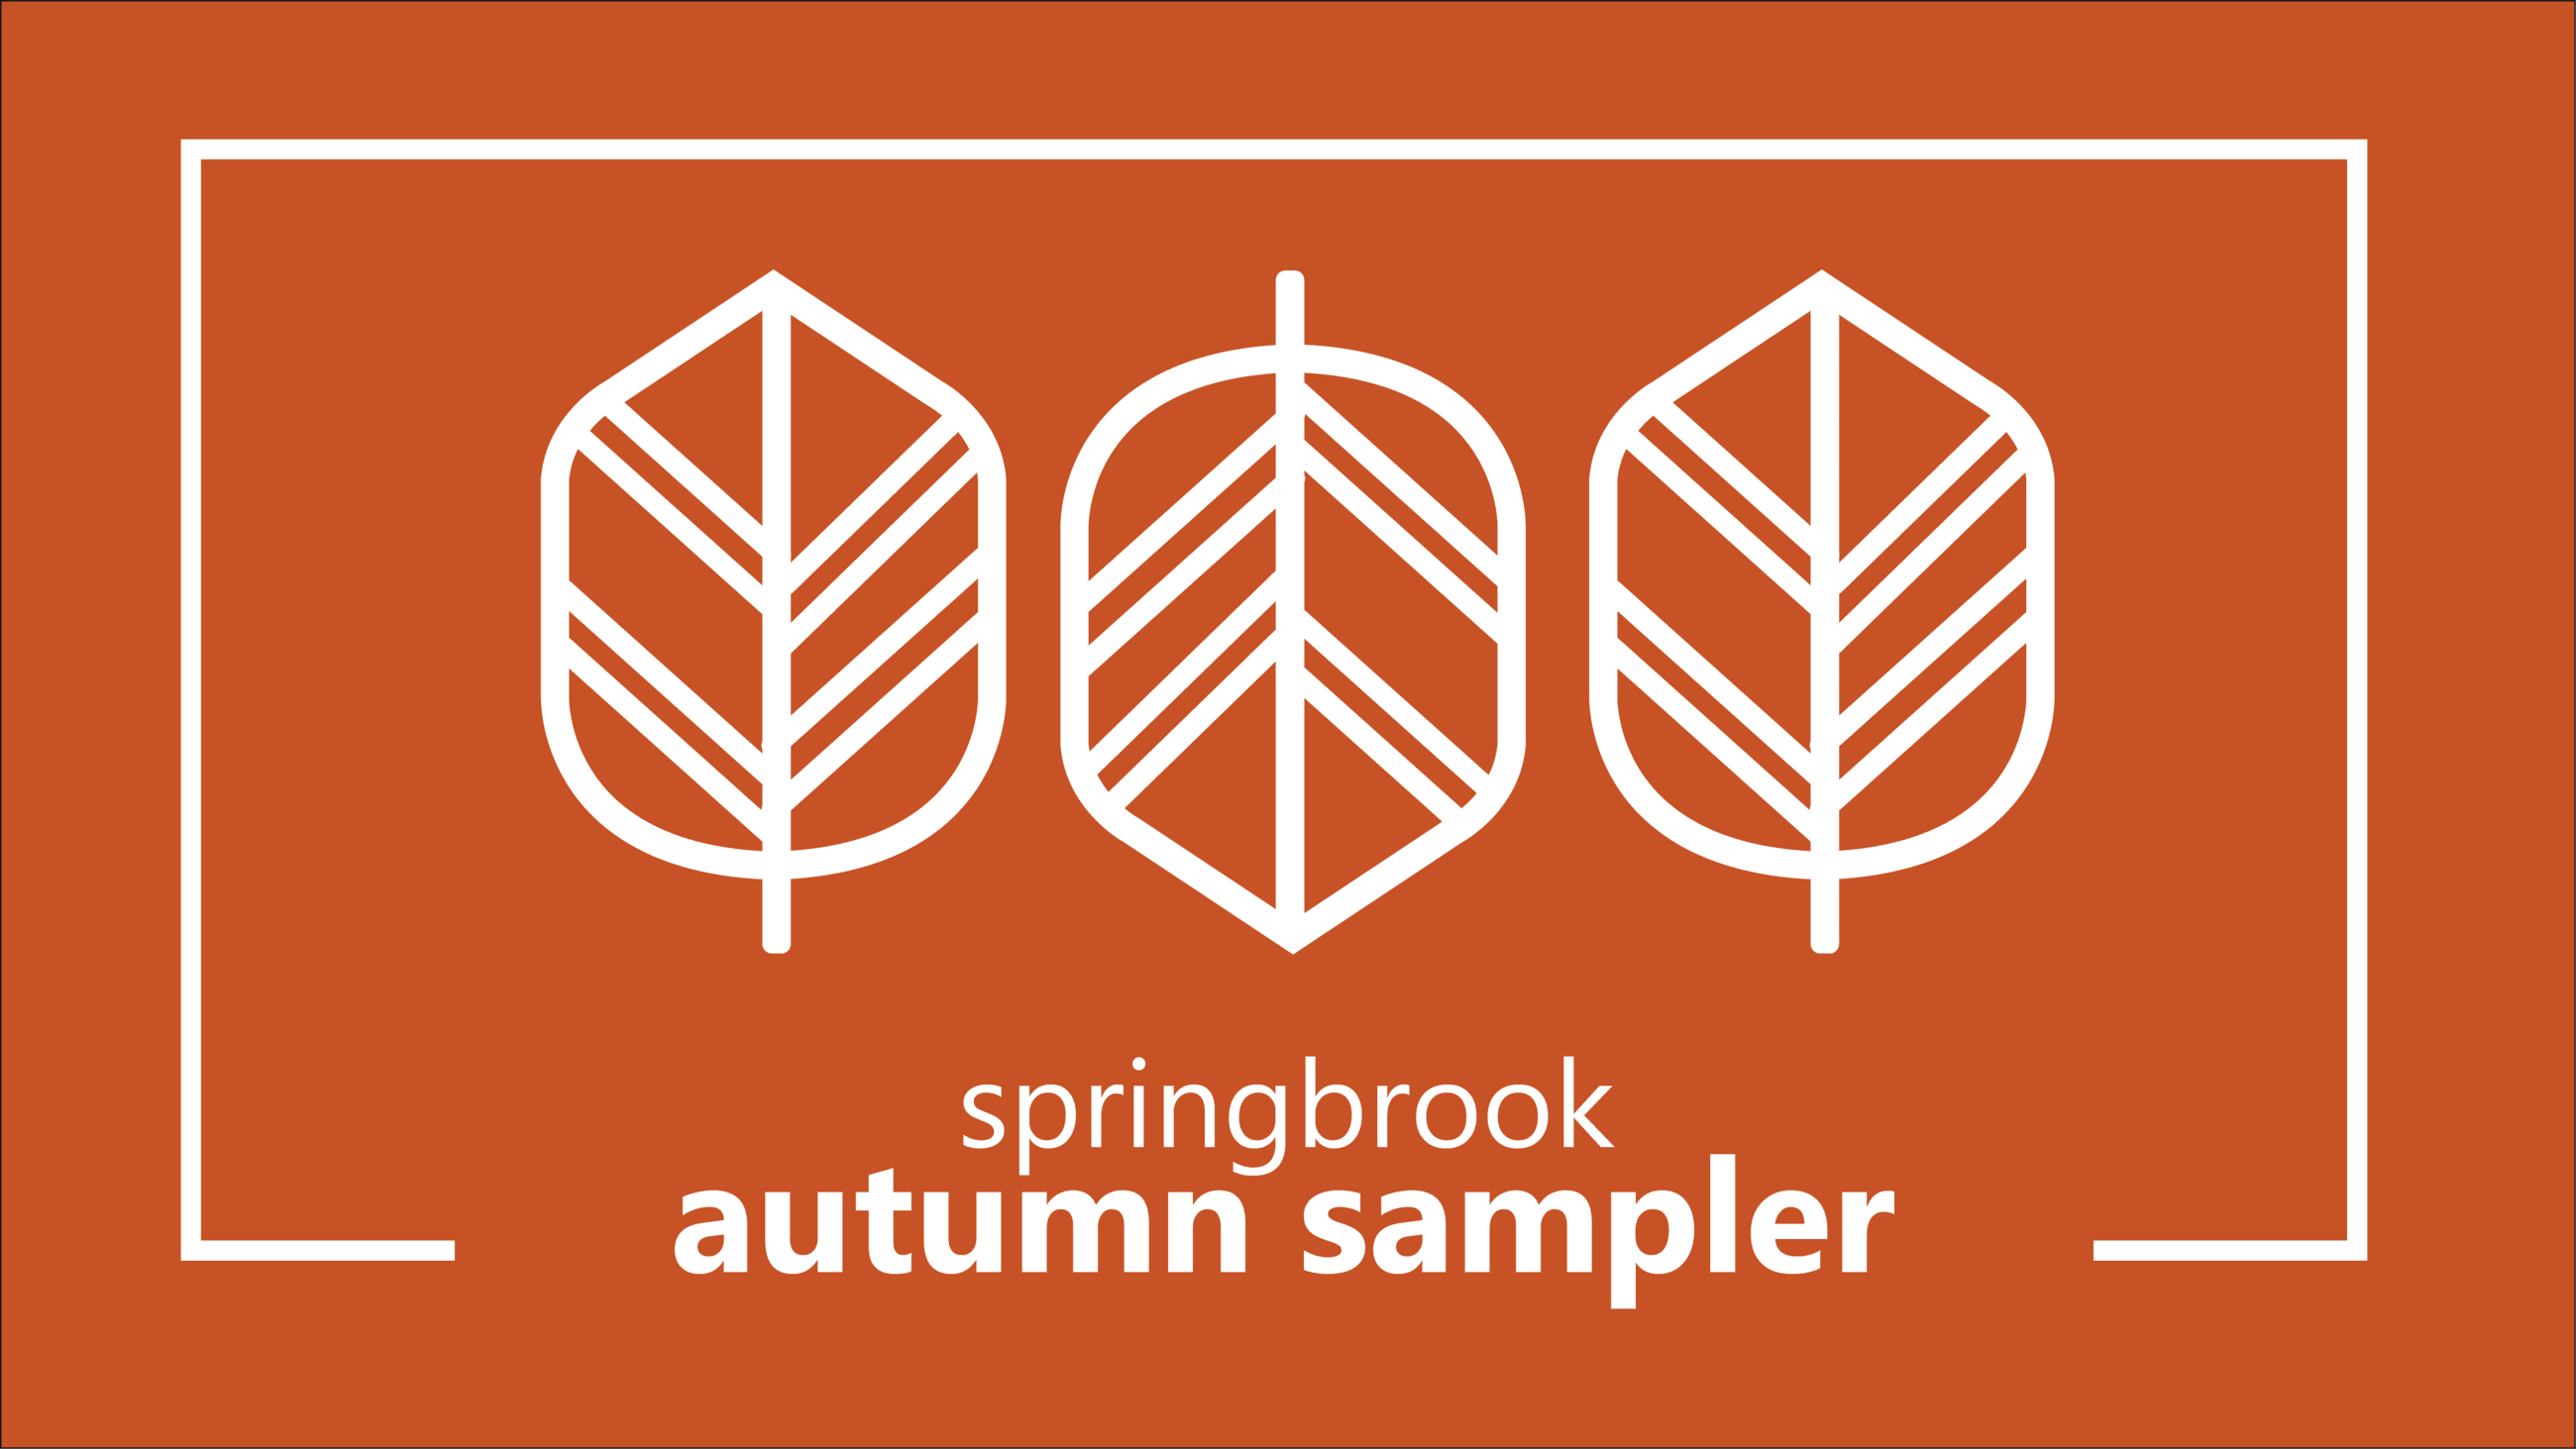 Autumn Sampler logo